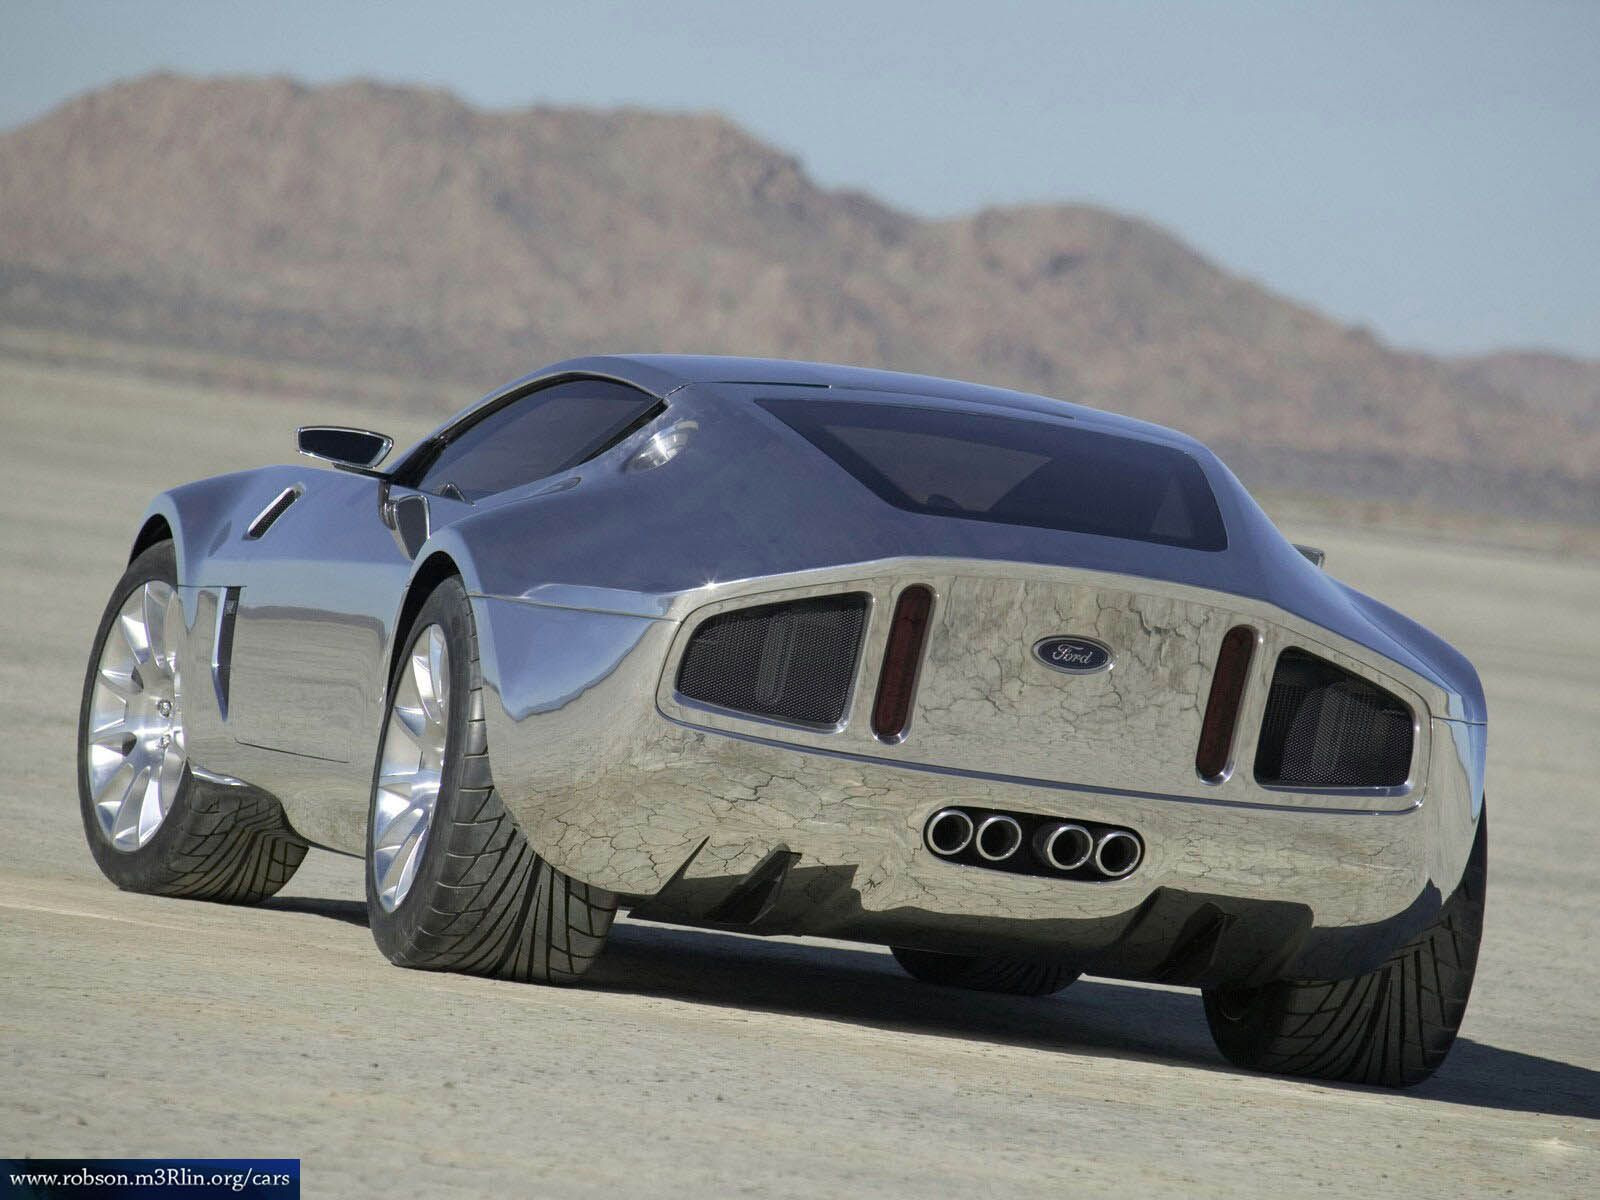 shelby cars | The Ford Shelby GR-1 is a uniquely emotional American sports car & shelby cars | The Ford Shelby GR-1 is a uniquely emotional ... markmcfarlin.com